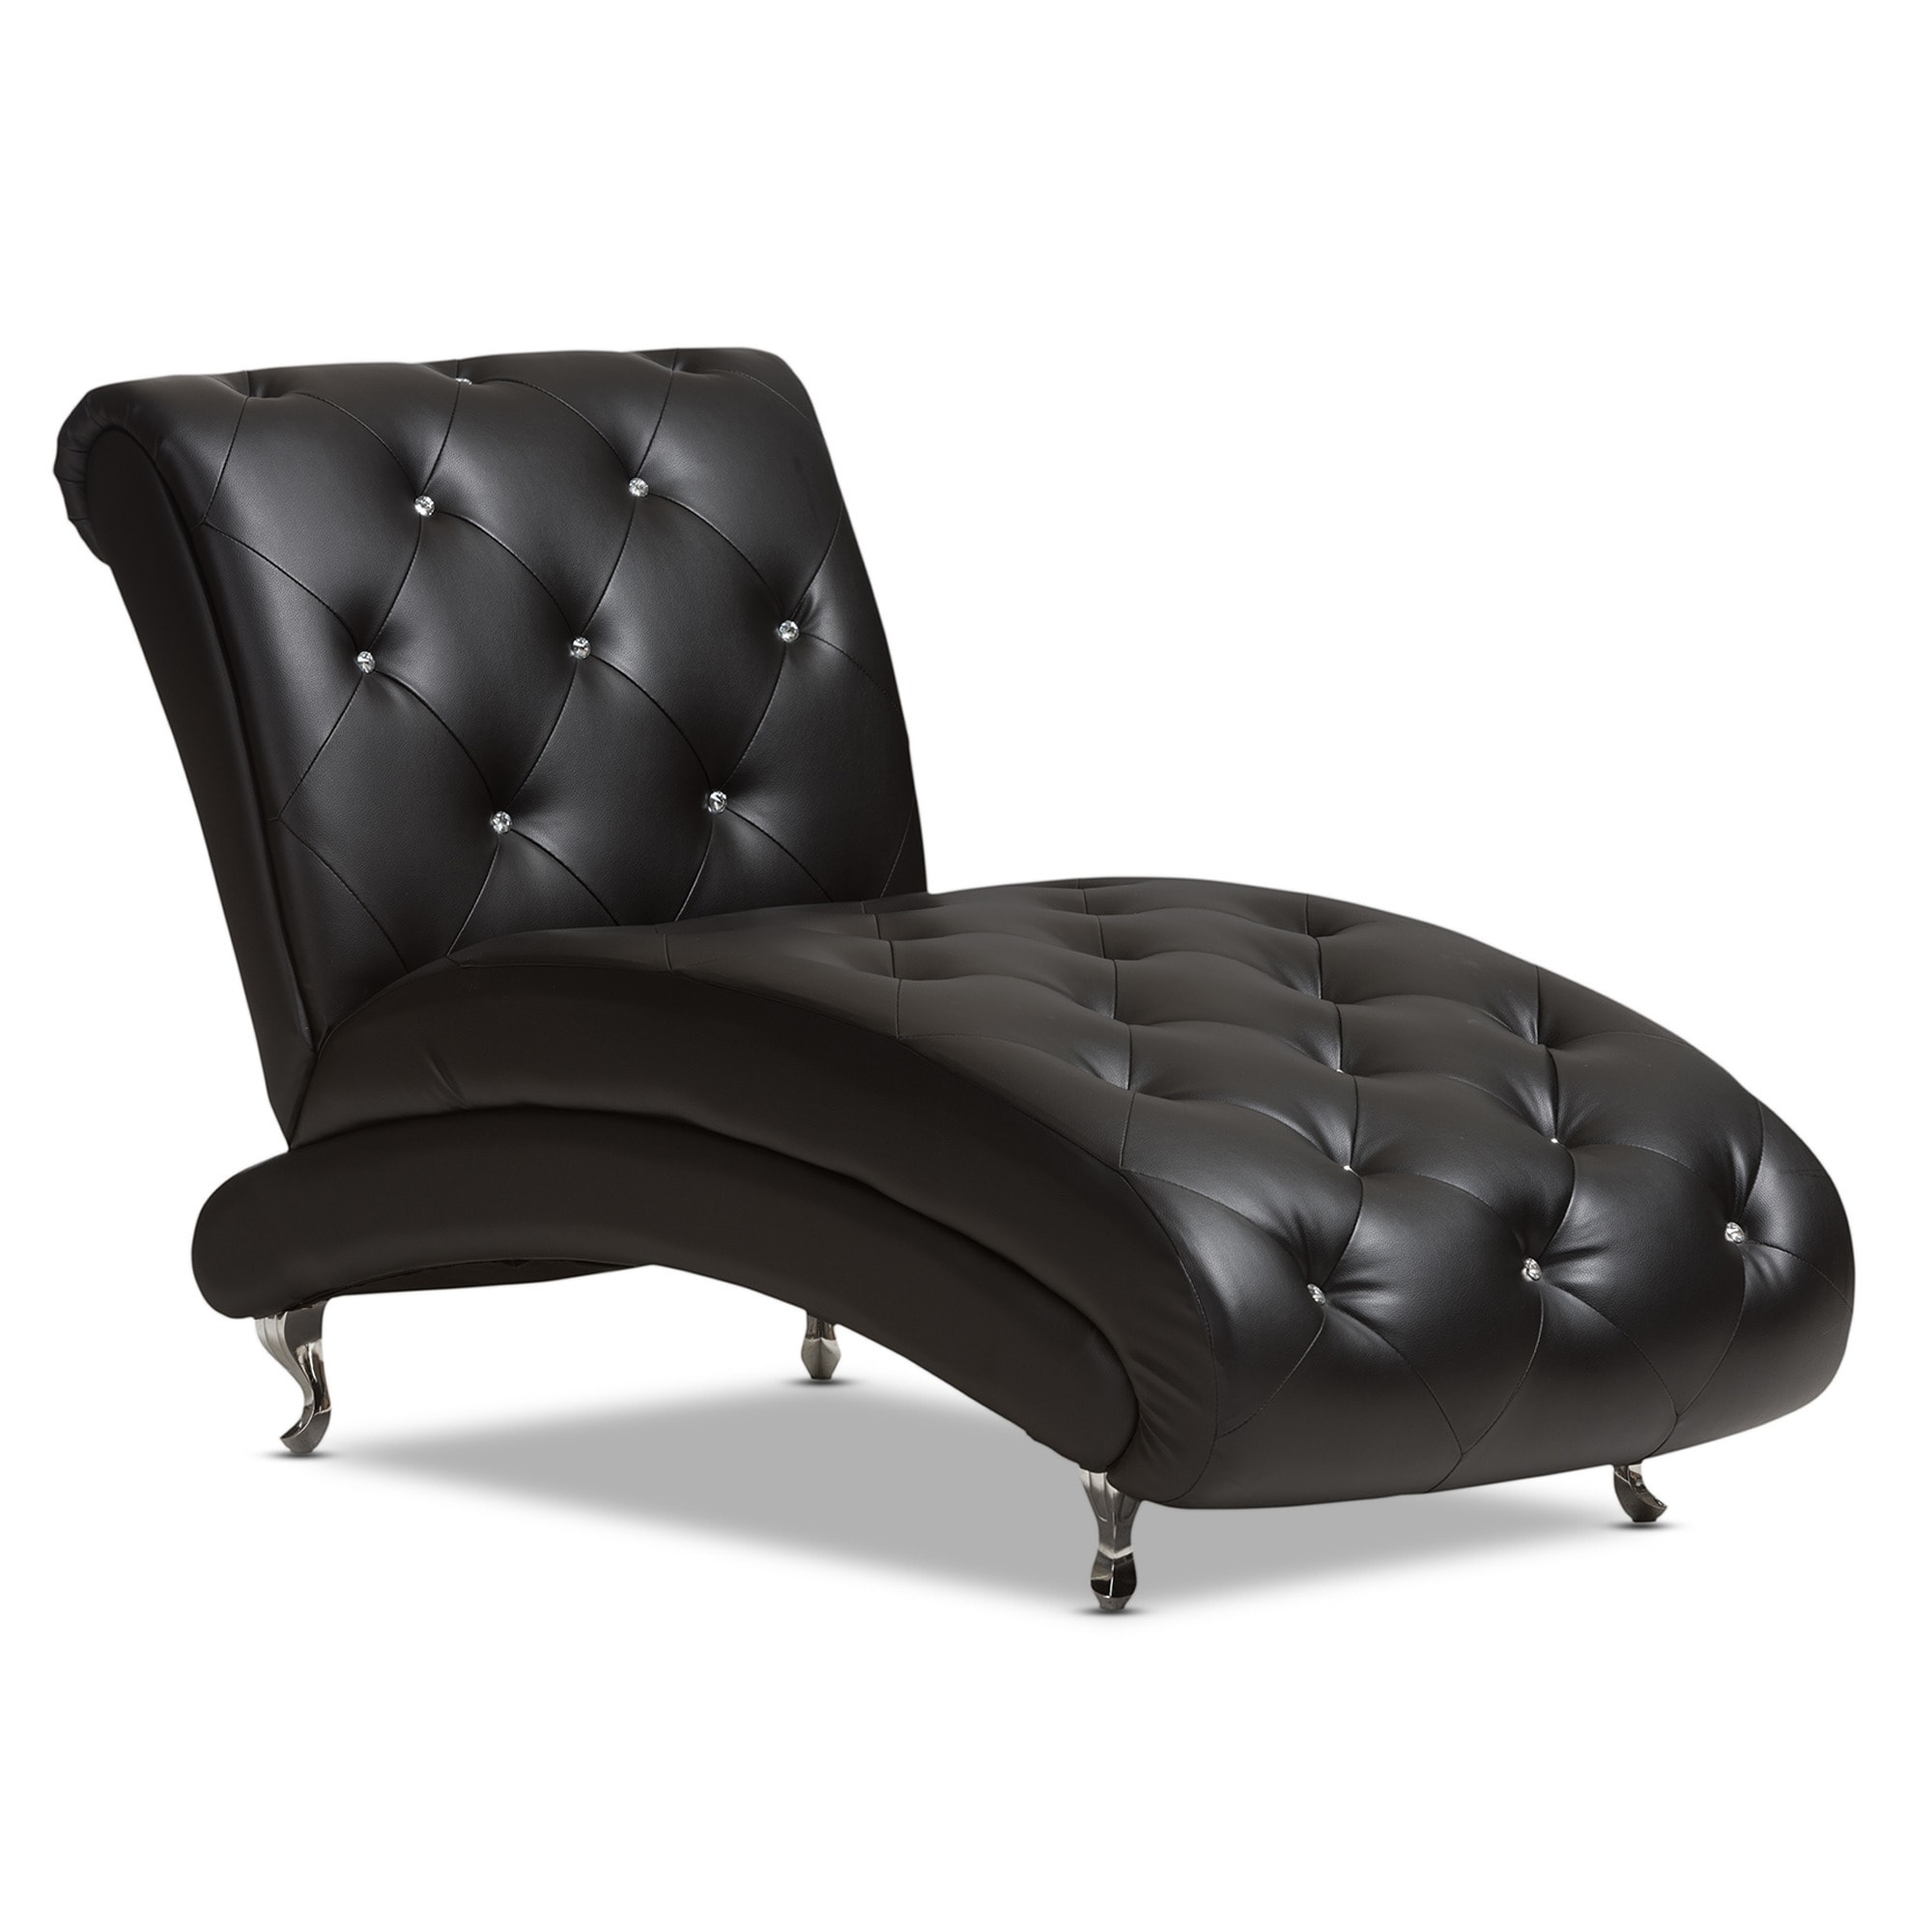 Well Liked Baxton Studio Pease Contemporary Black Faux Leather Crystal Tufted In Black Chaise Lounges (View 5 of 15)